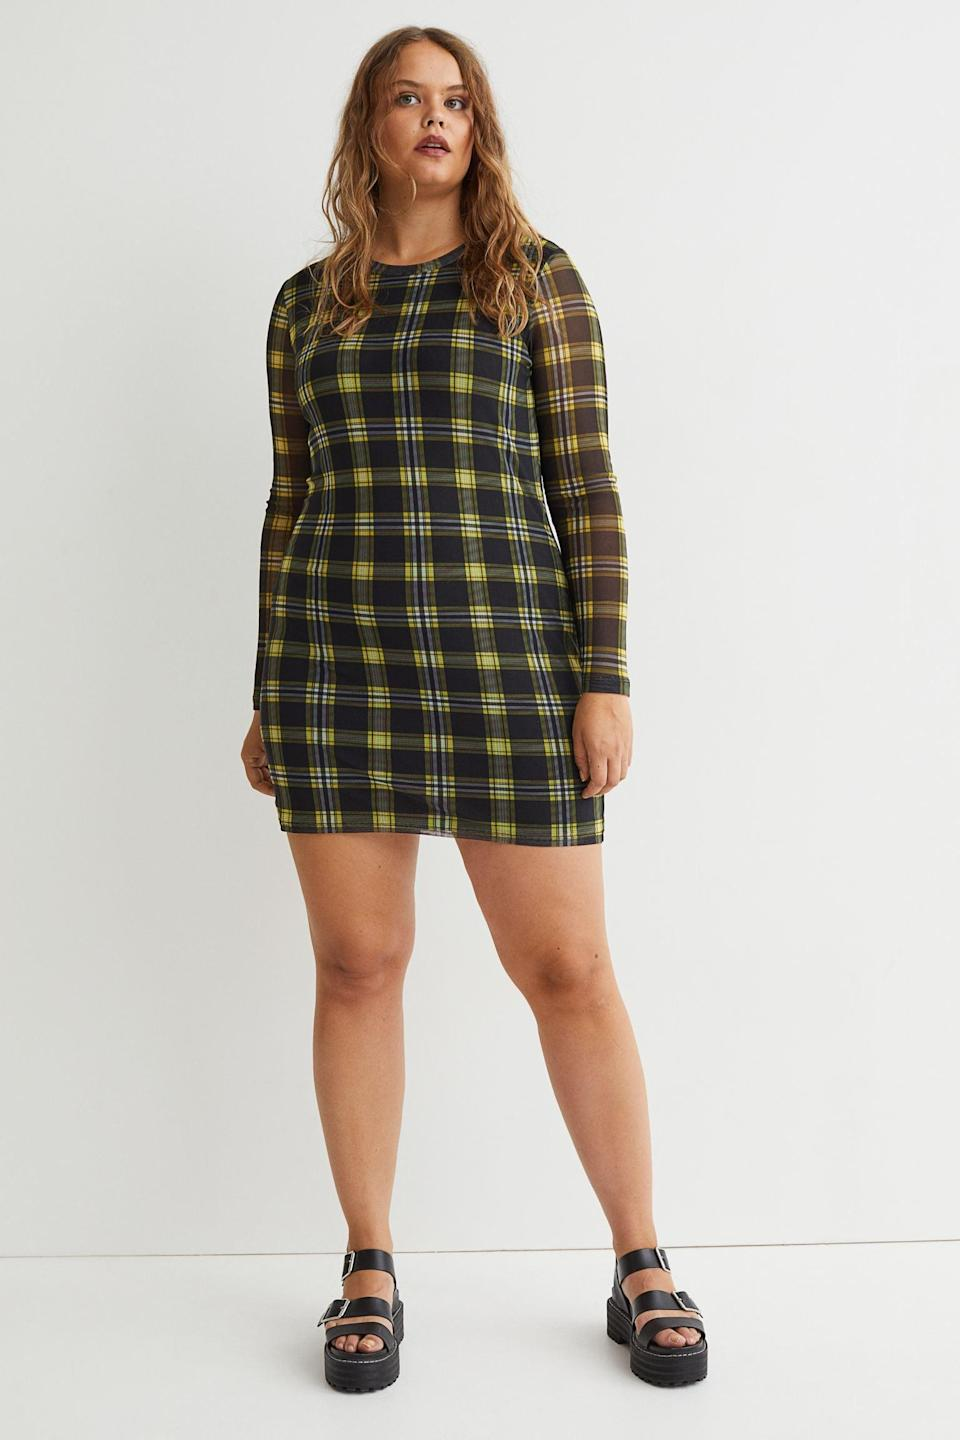 <p>This <span>H&amp;M+ Long-sleeved Dress</span> ($25) looks playful, edgy and cool. We love the subtle pop of color and the modern fitted silhouette.</p>